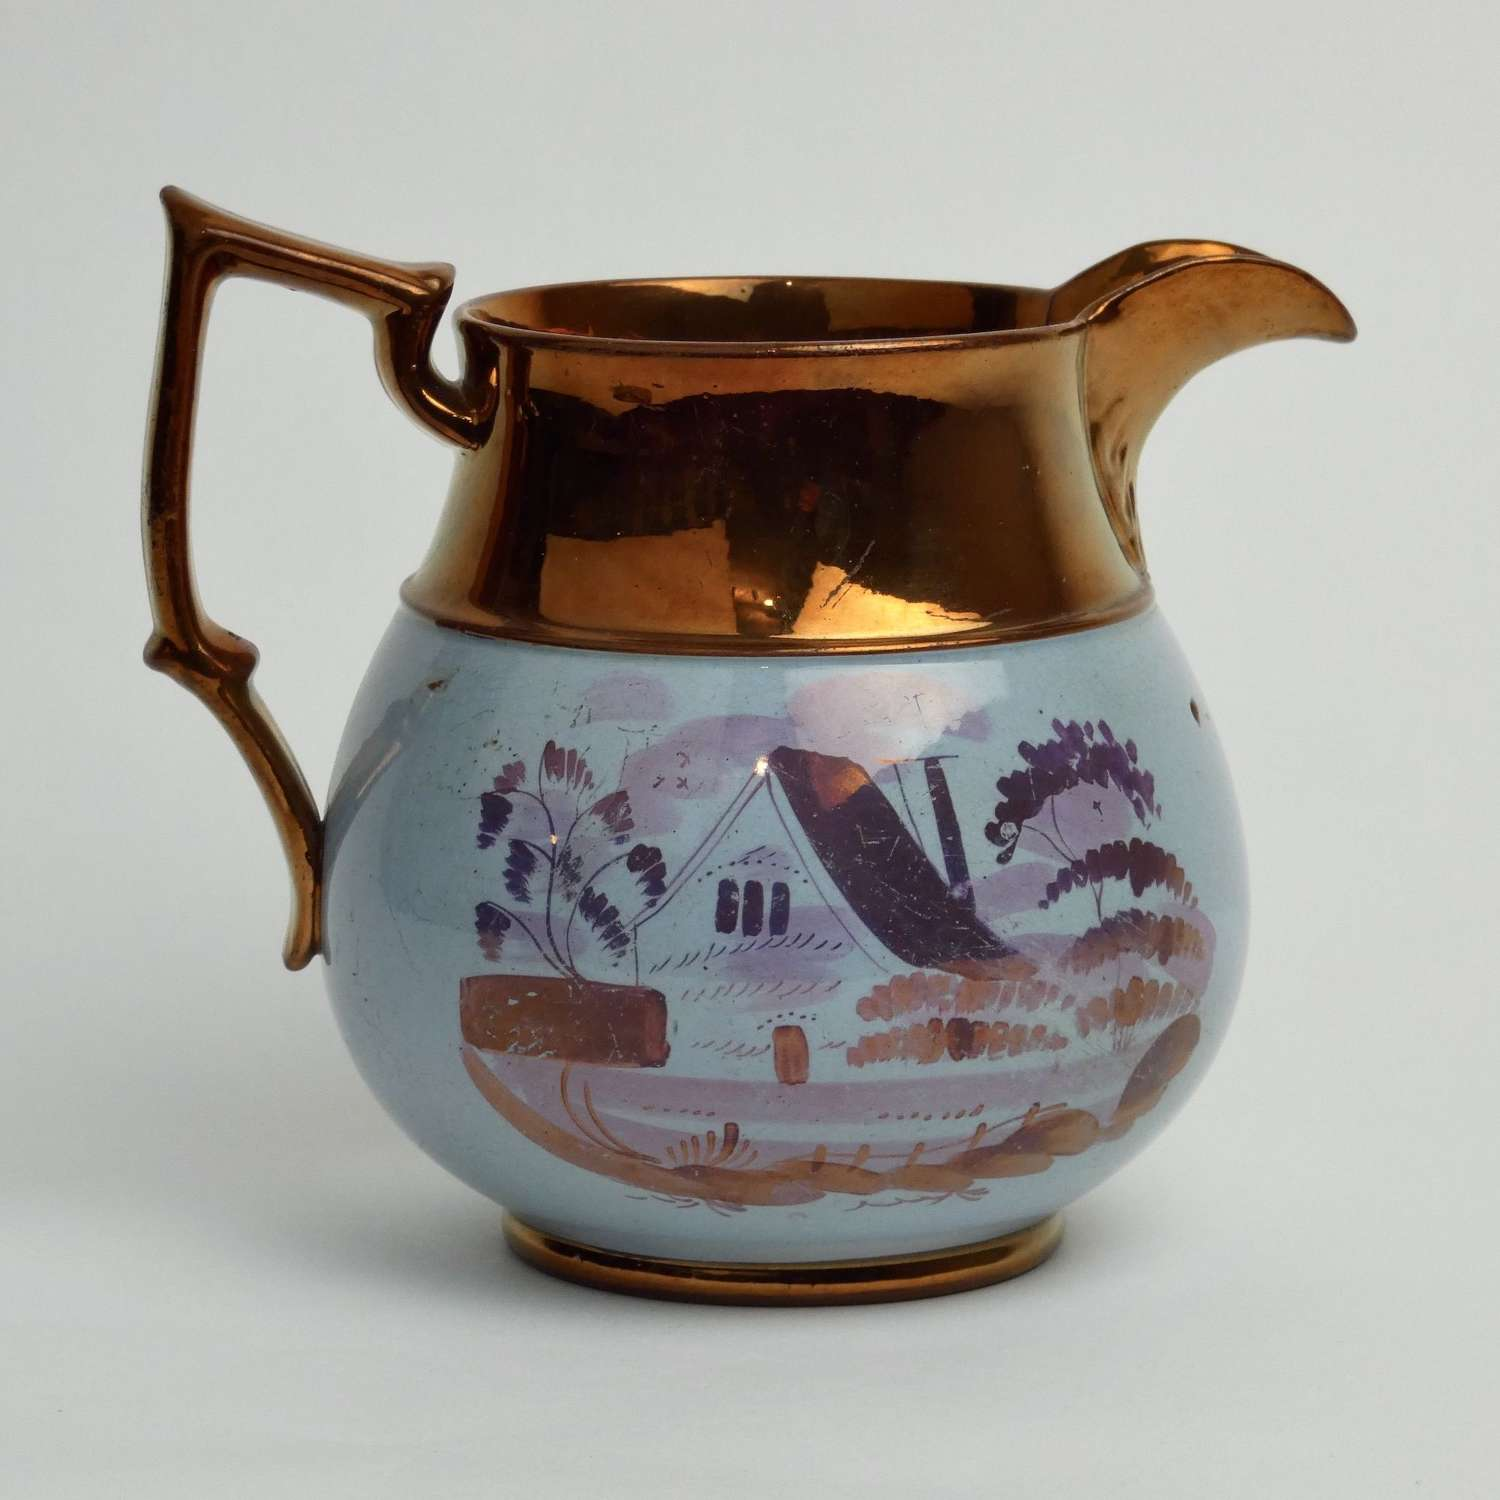 Copper lustre jug with house decoration